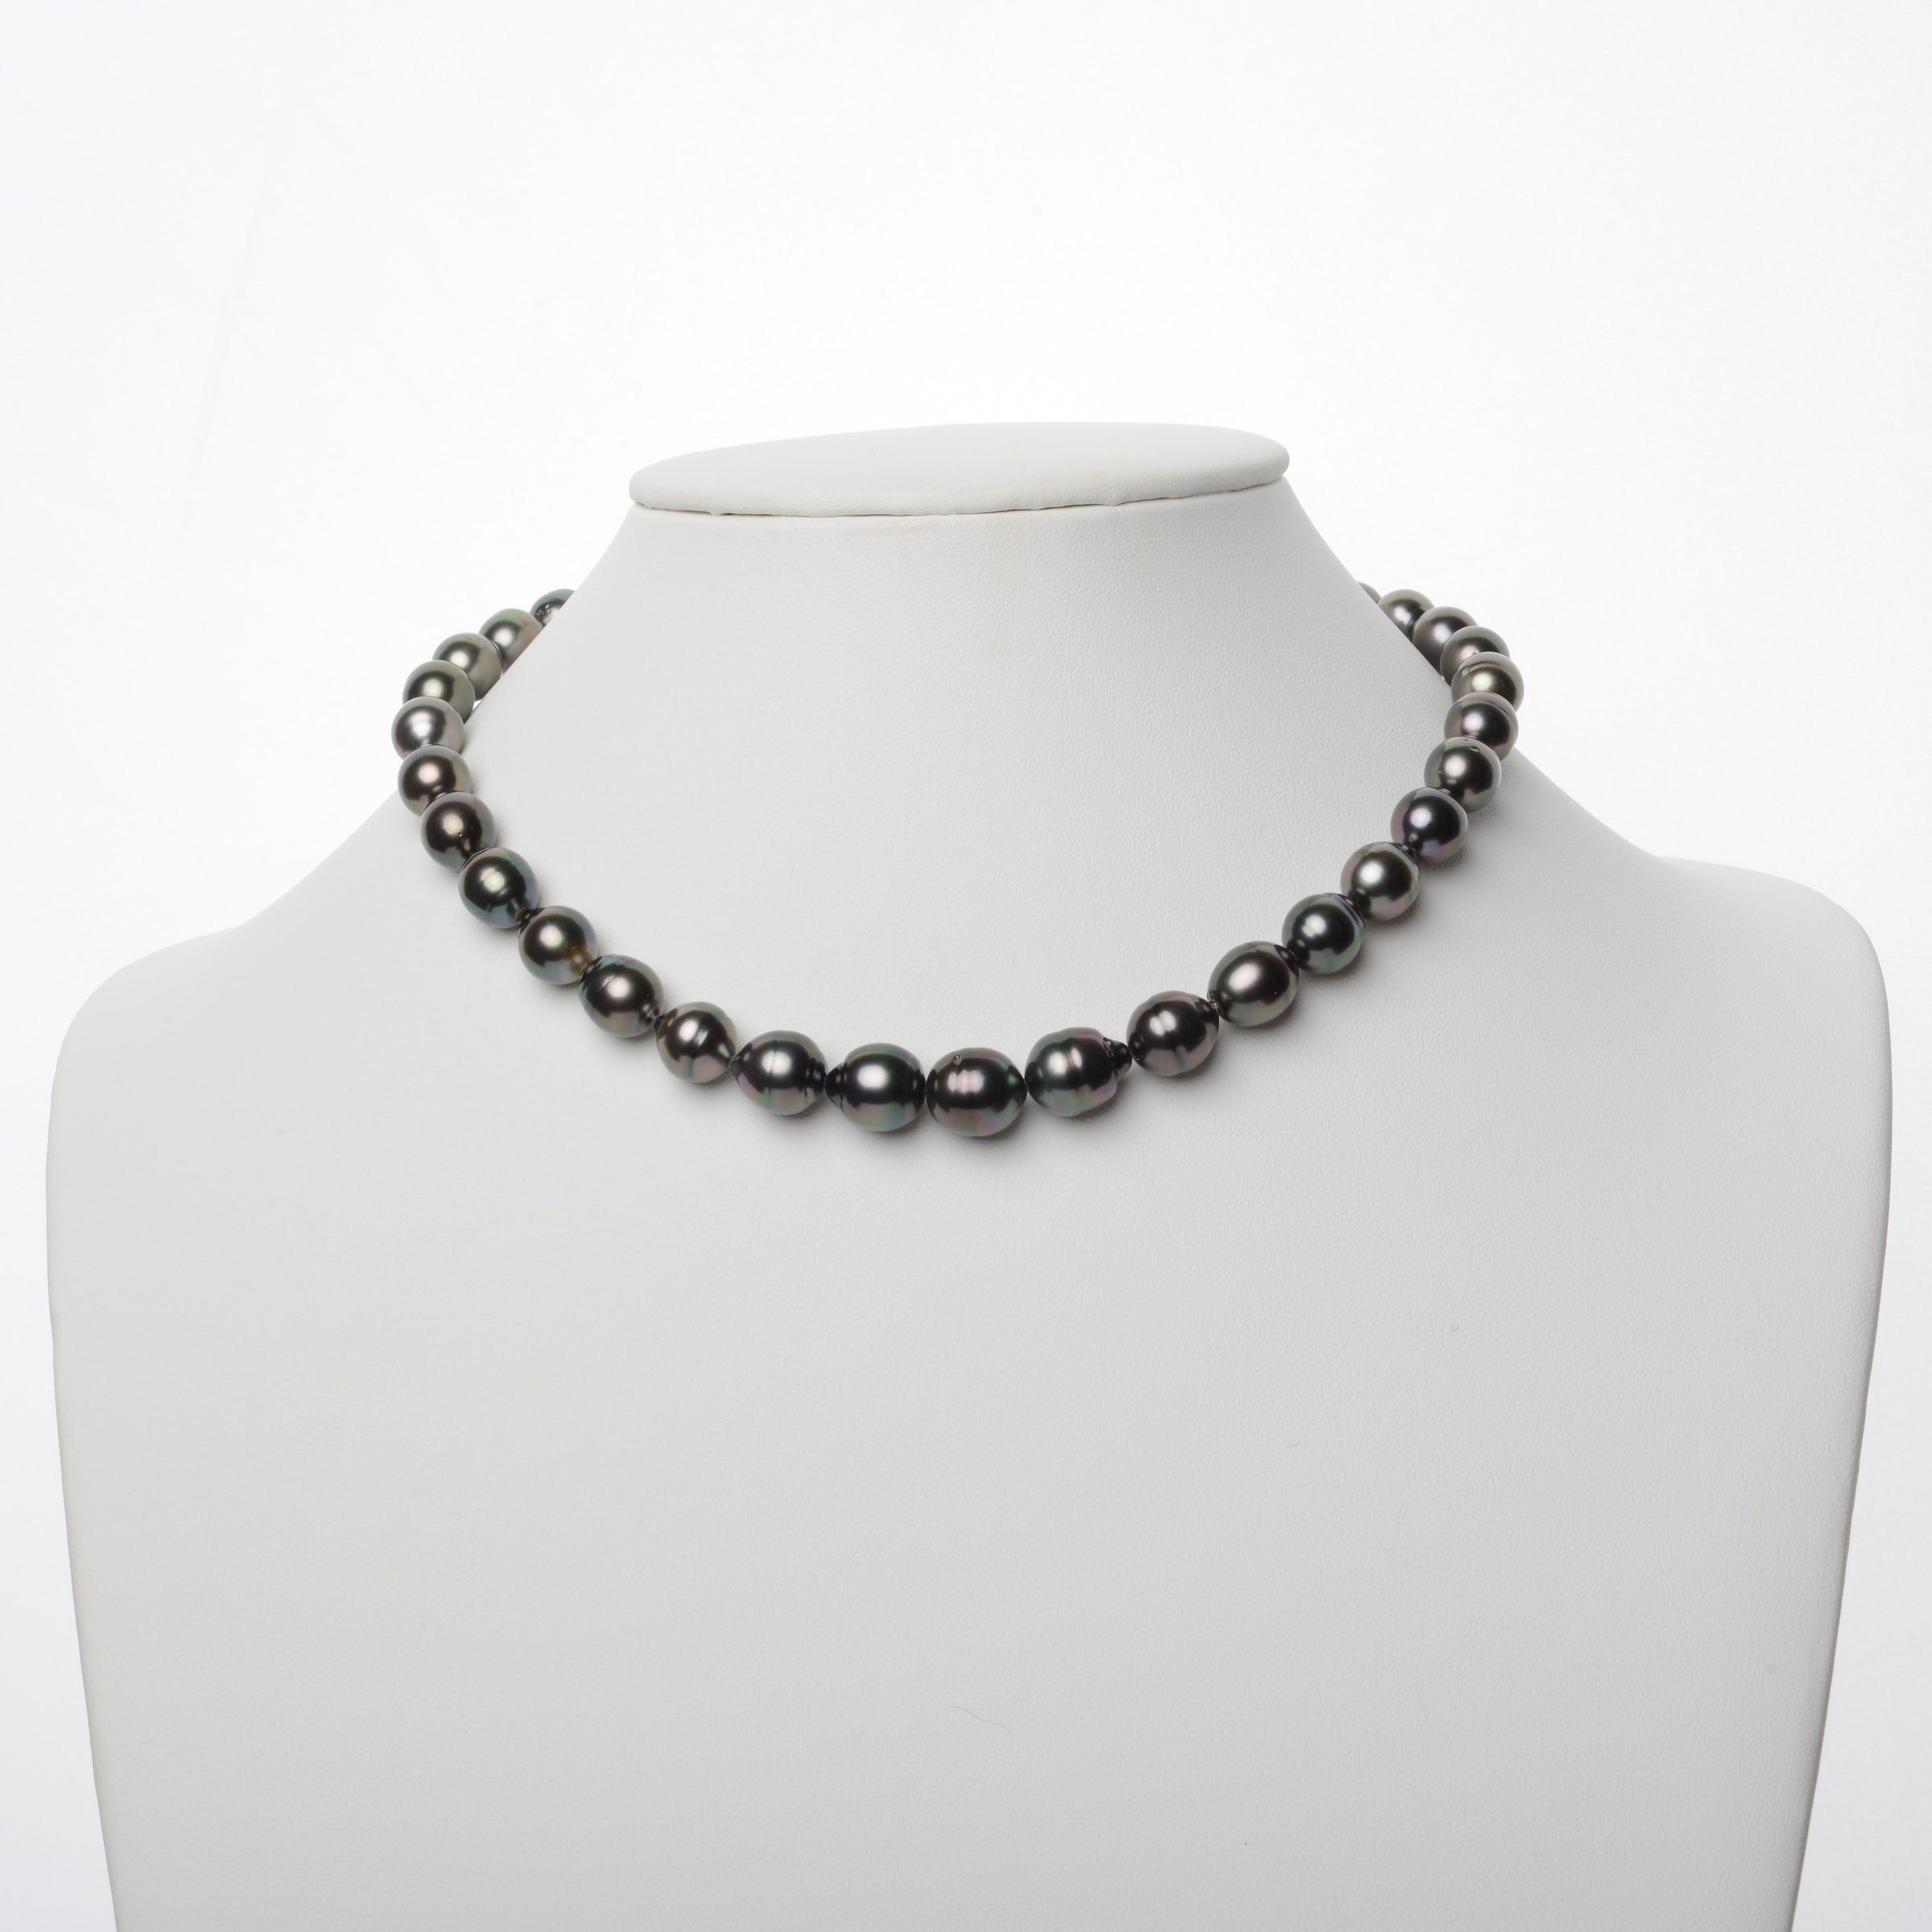 9.0-11.4 mm AA+/AAA Tahitian Baroque Pearl Necklace